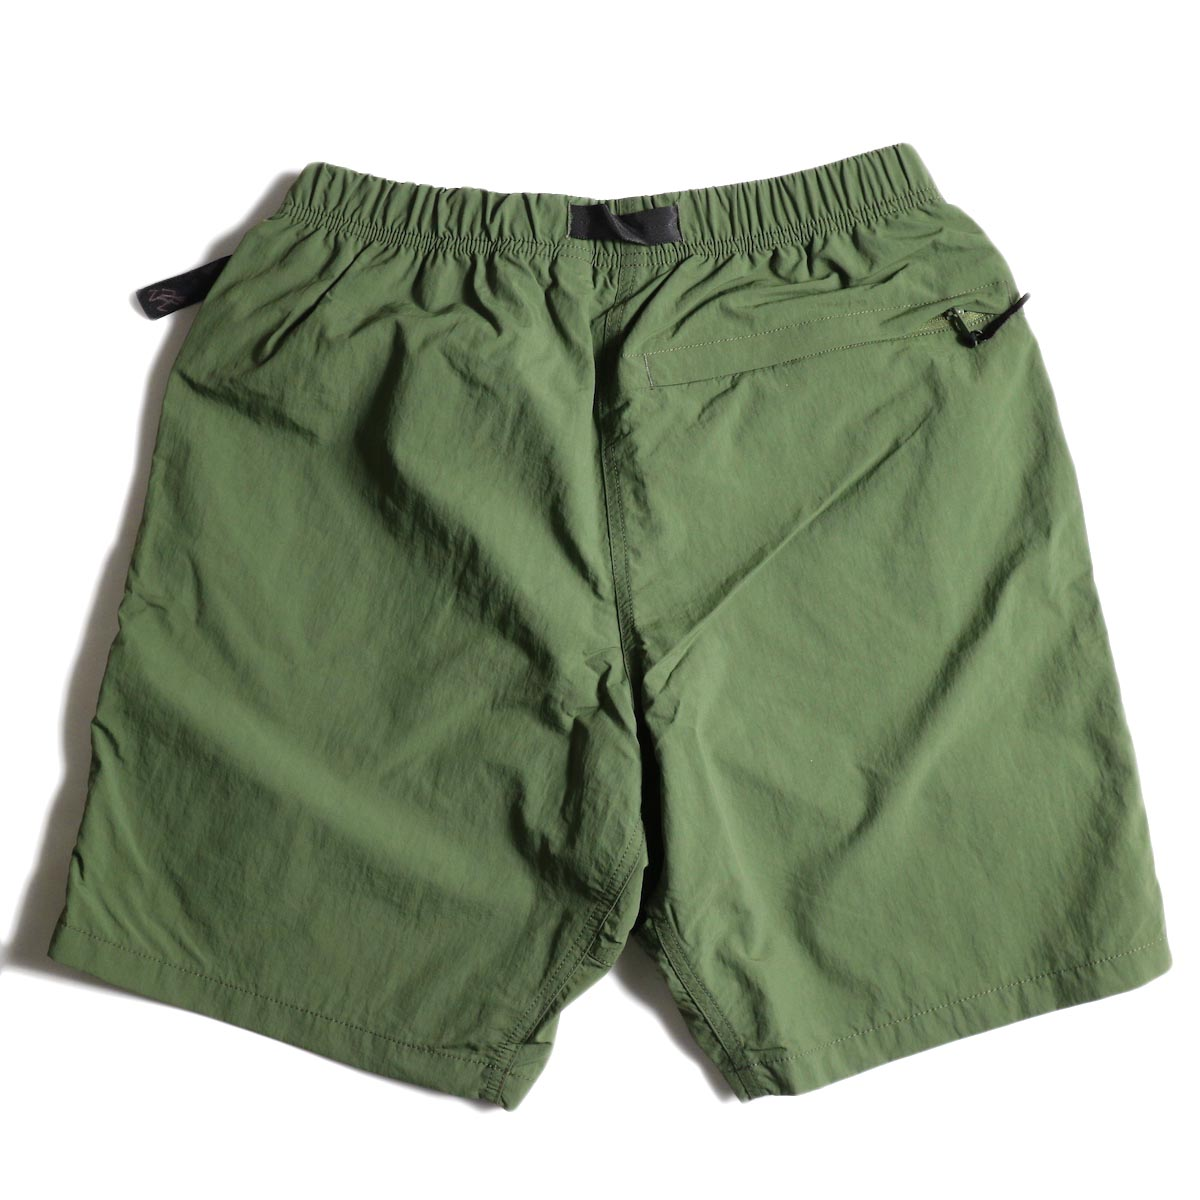 GRAMICCI / Shell Packable Shorts (Olive)背面